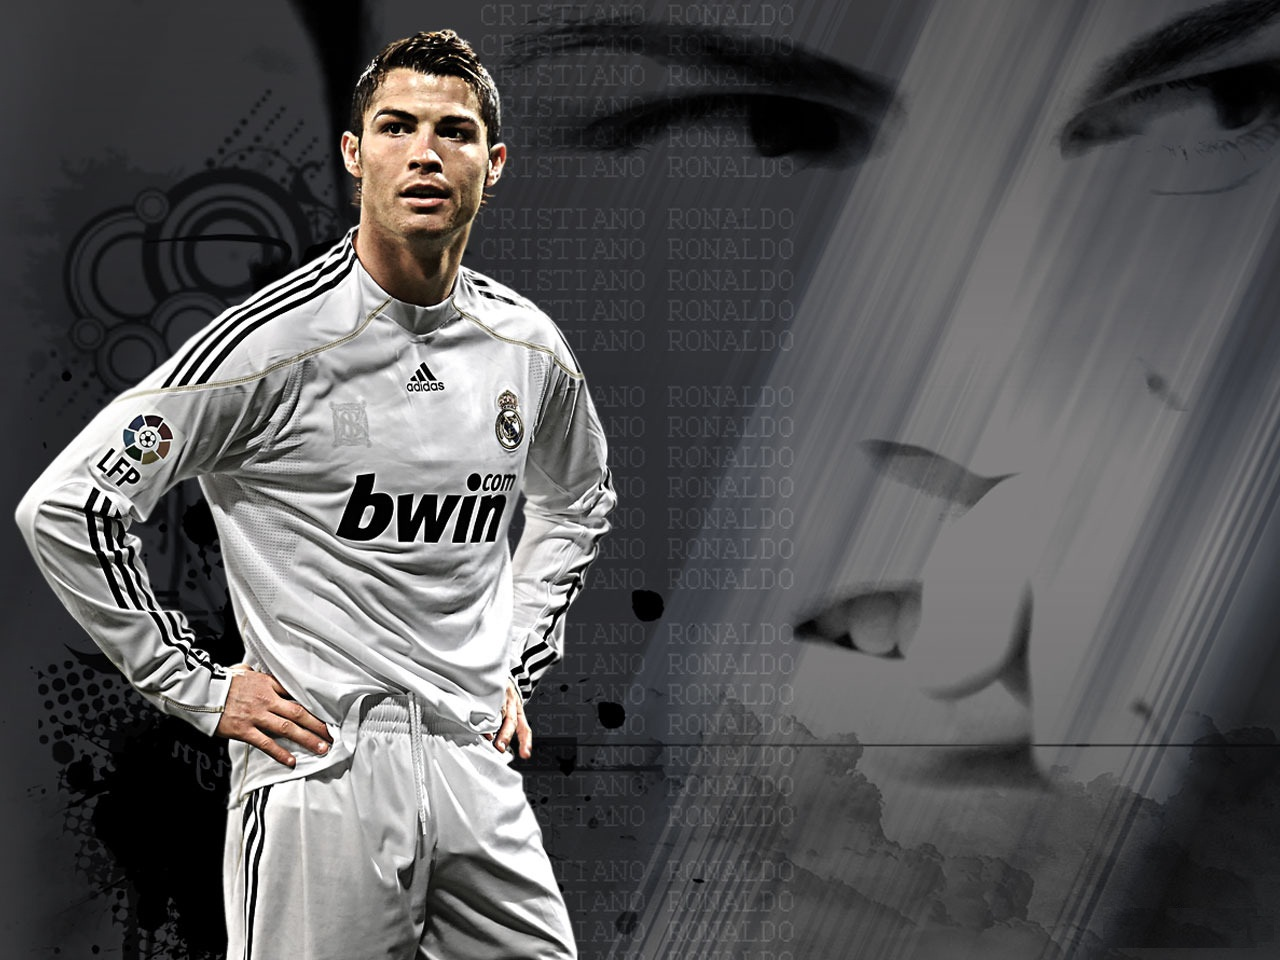 Cristiano Ronaldo / Real Madrid (1280x960) - Click HERE to Download ...